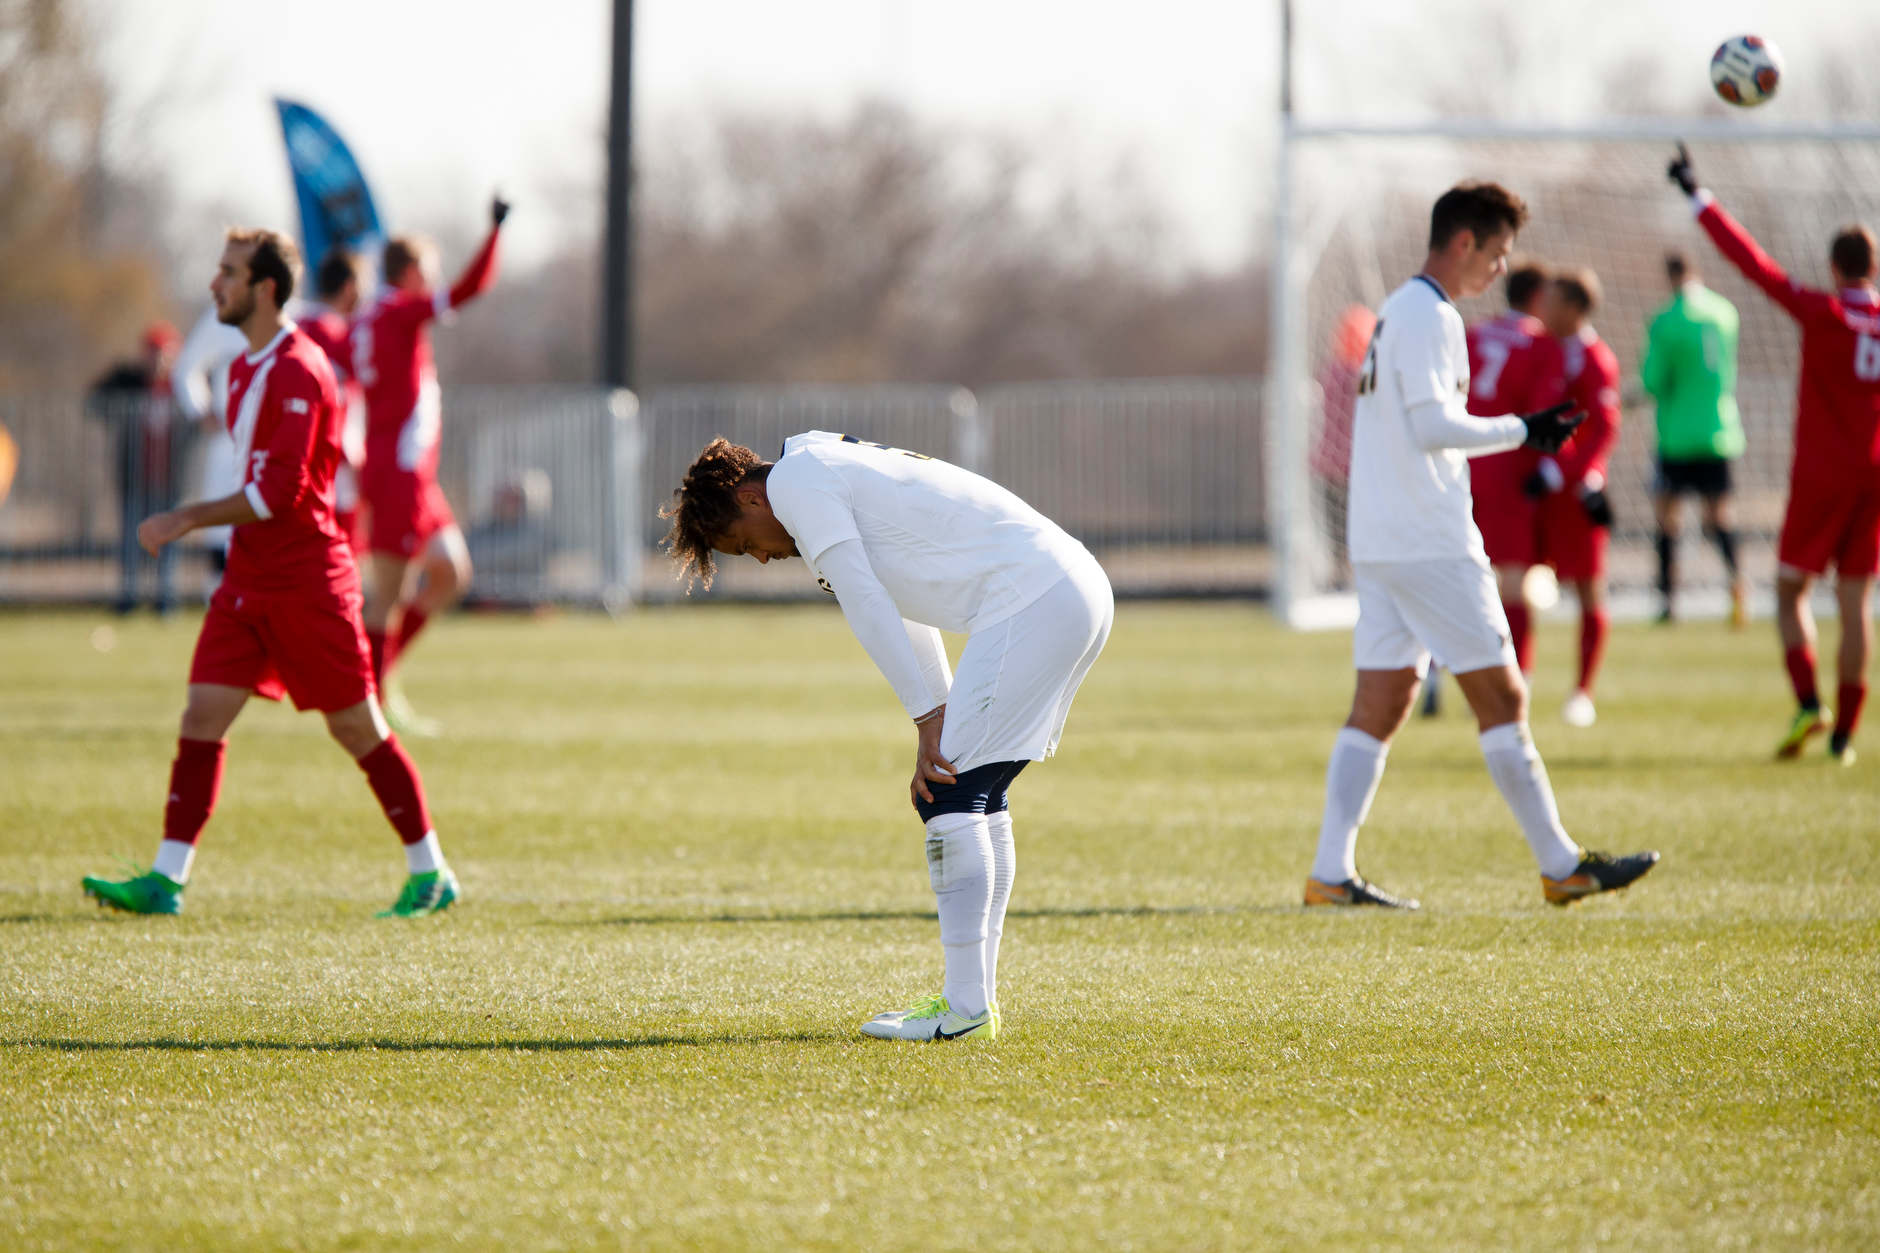 Michigan's Abdou Samake (5) reacts after a 3-0 loss to Indiana in the Big Ten Men's Soccer Tournament championship game at Grand Park in Westfield, Indiana on Sunday, Nov. 11, 2018. (Photo by James Brosher)